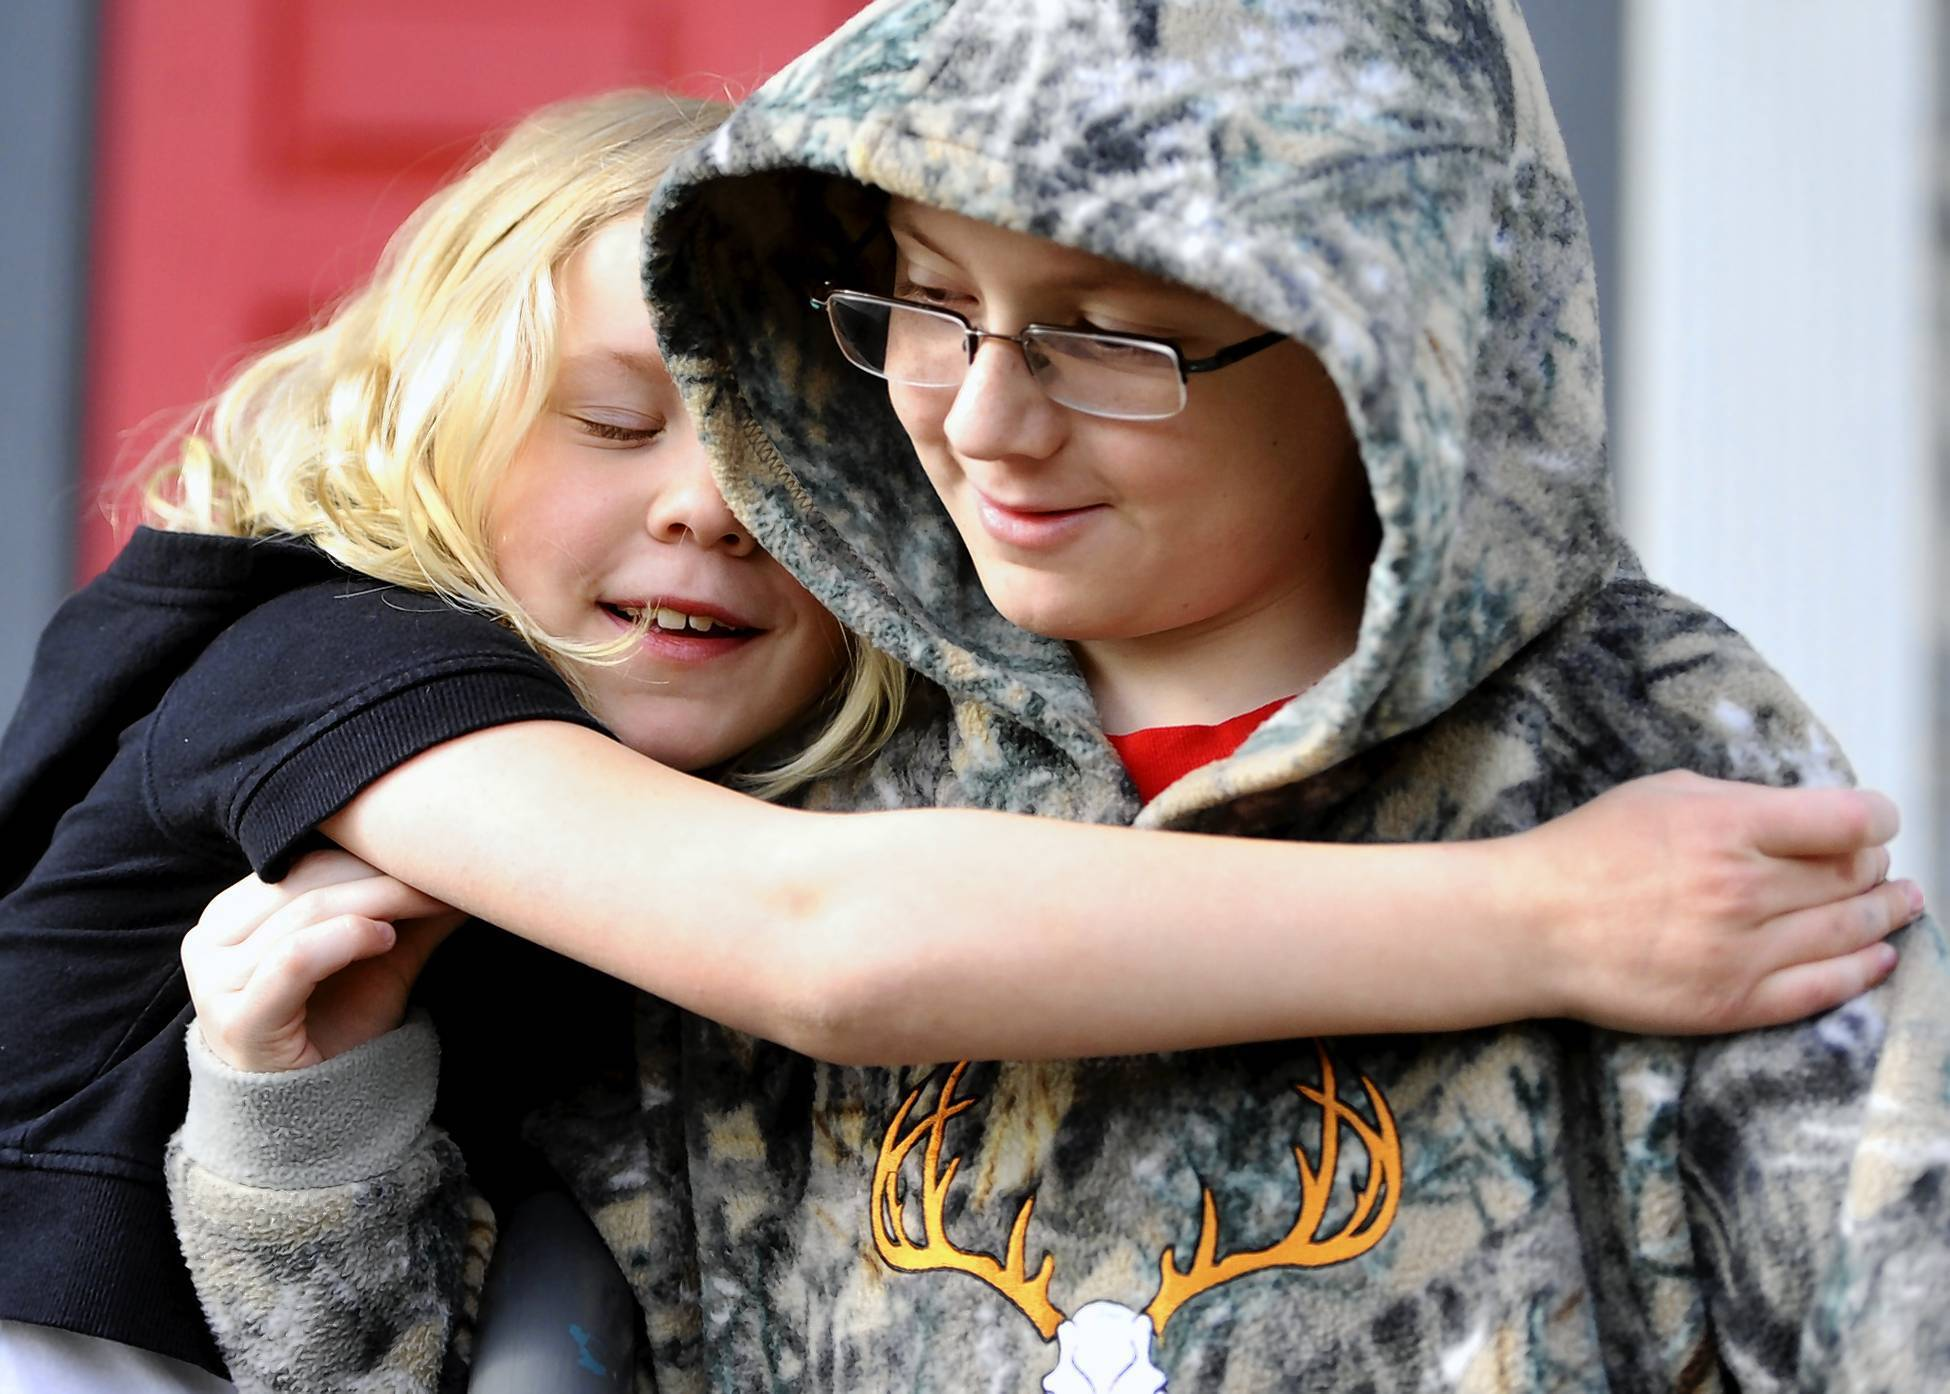 Tommy Coykendall gets a hug from sister Hailey, 7, outside the Cancer Support Community.